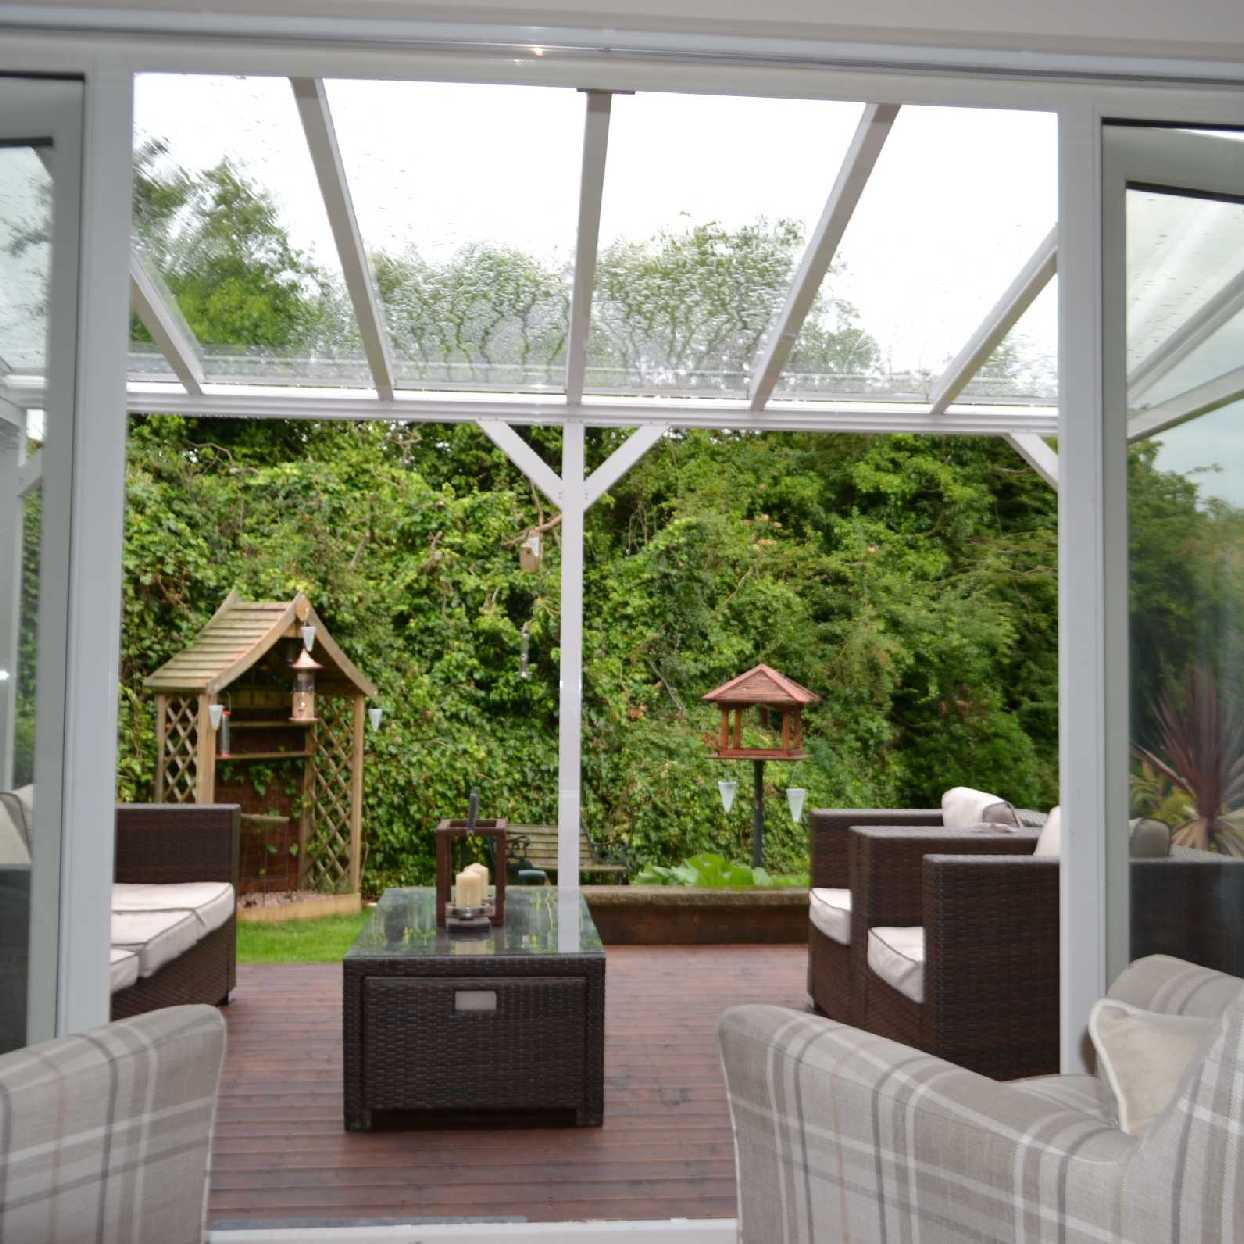 Great selection of Omega Smart Lean-To Canopy UNGLAZED for 6mm Glazing - 7.7m (W) x 3.5m (P), (4) Supporting Posts